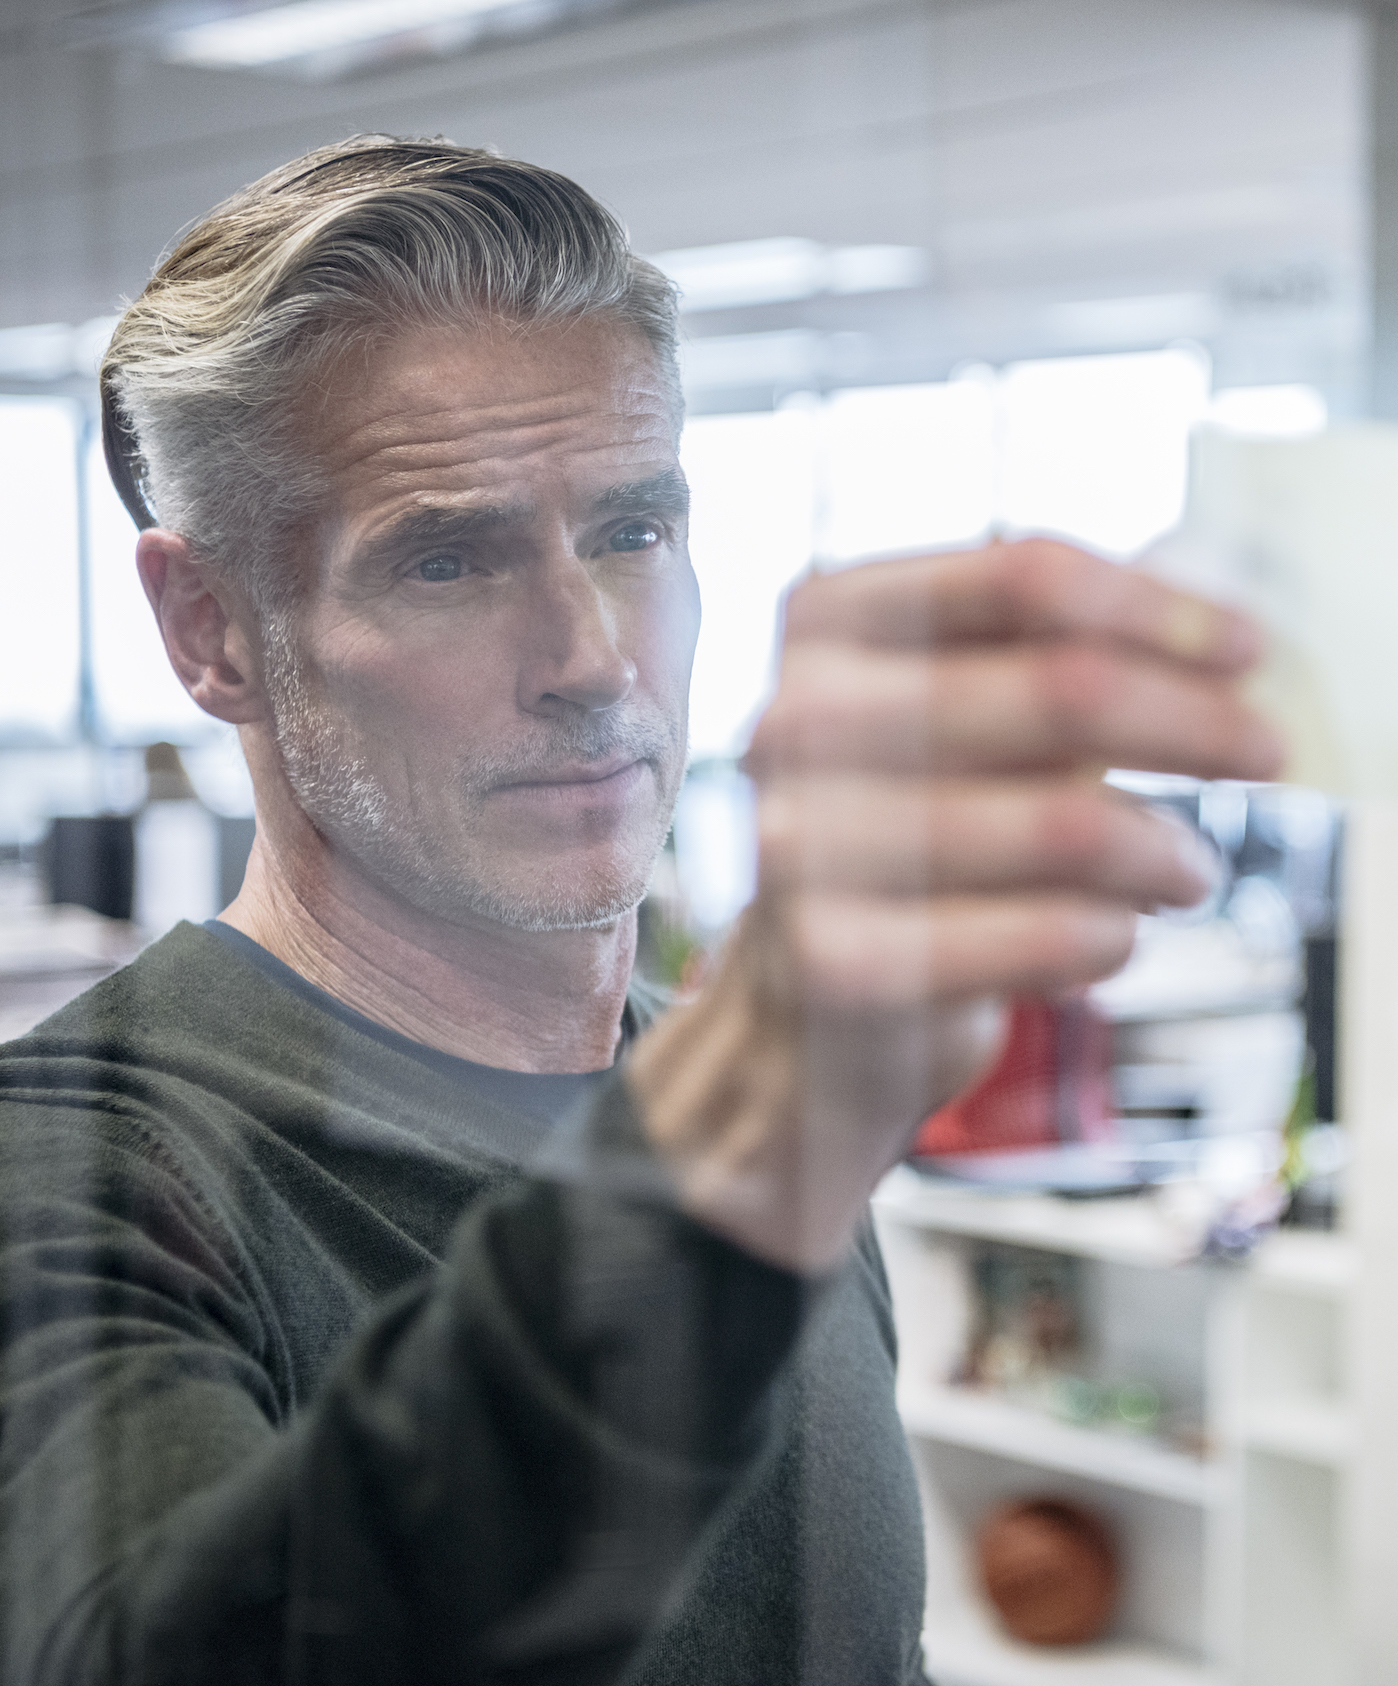 Mature businessman sticking notes on to glass, serious expression